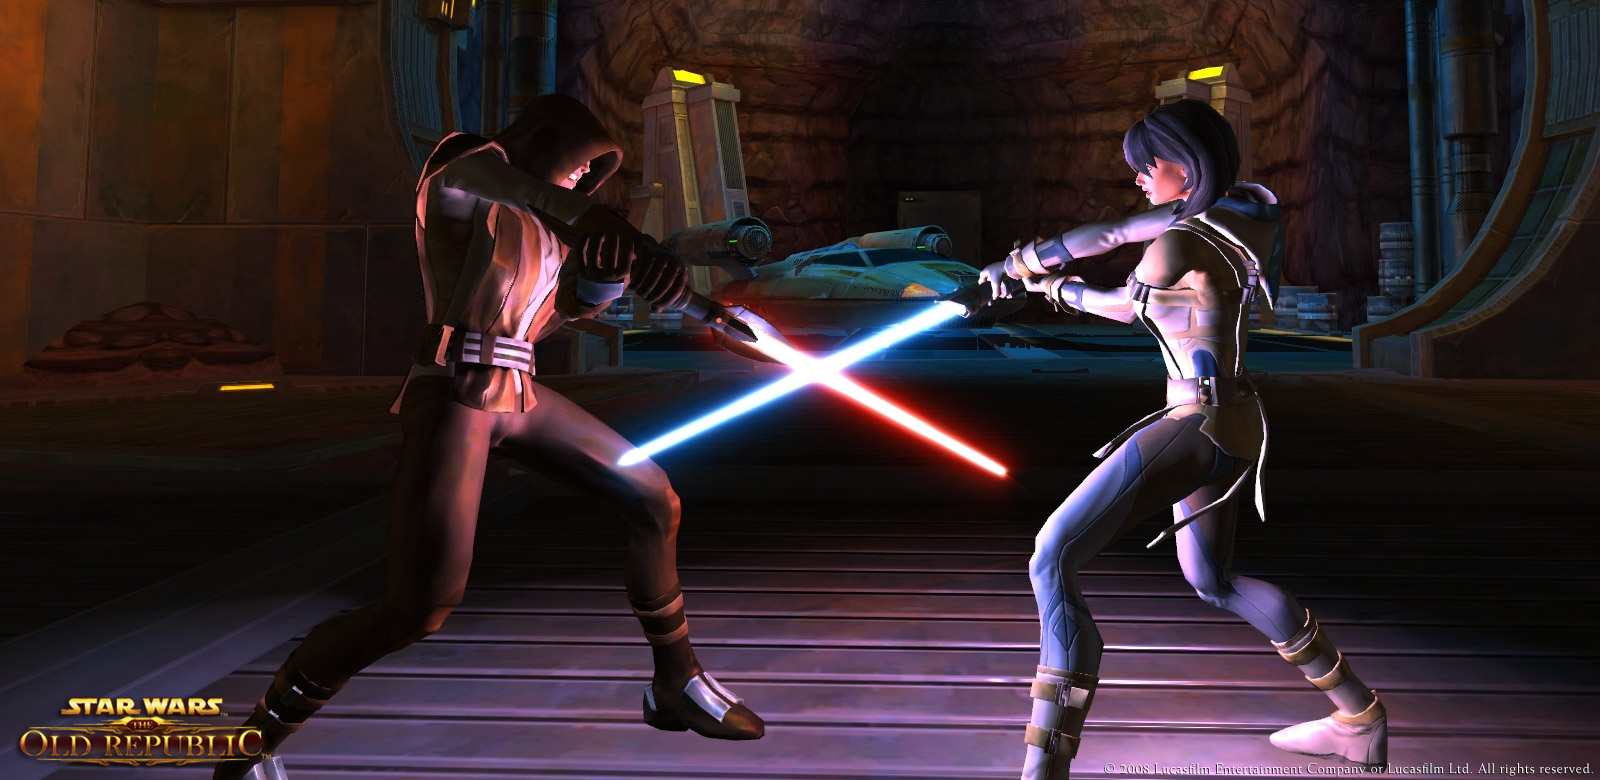 SWTOR free-to-play